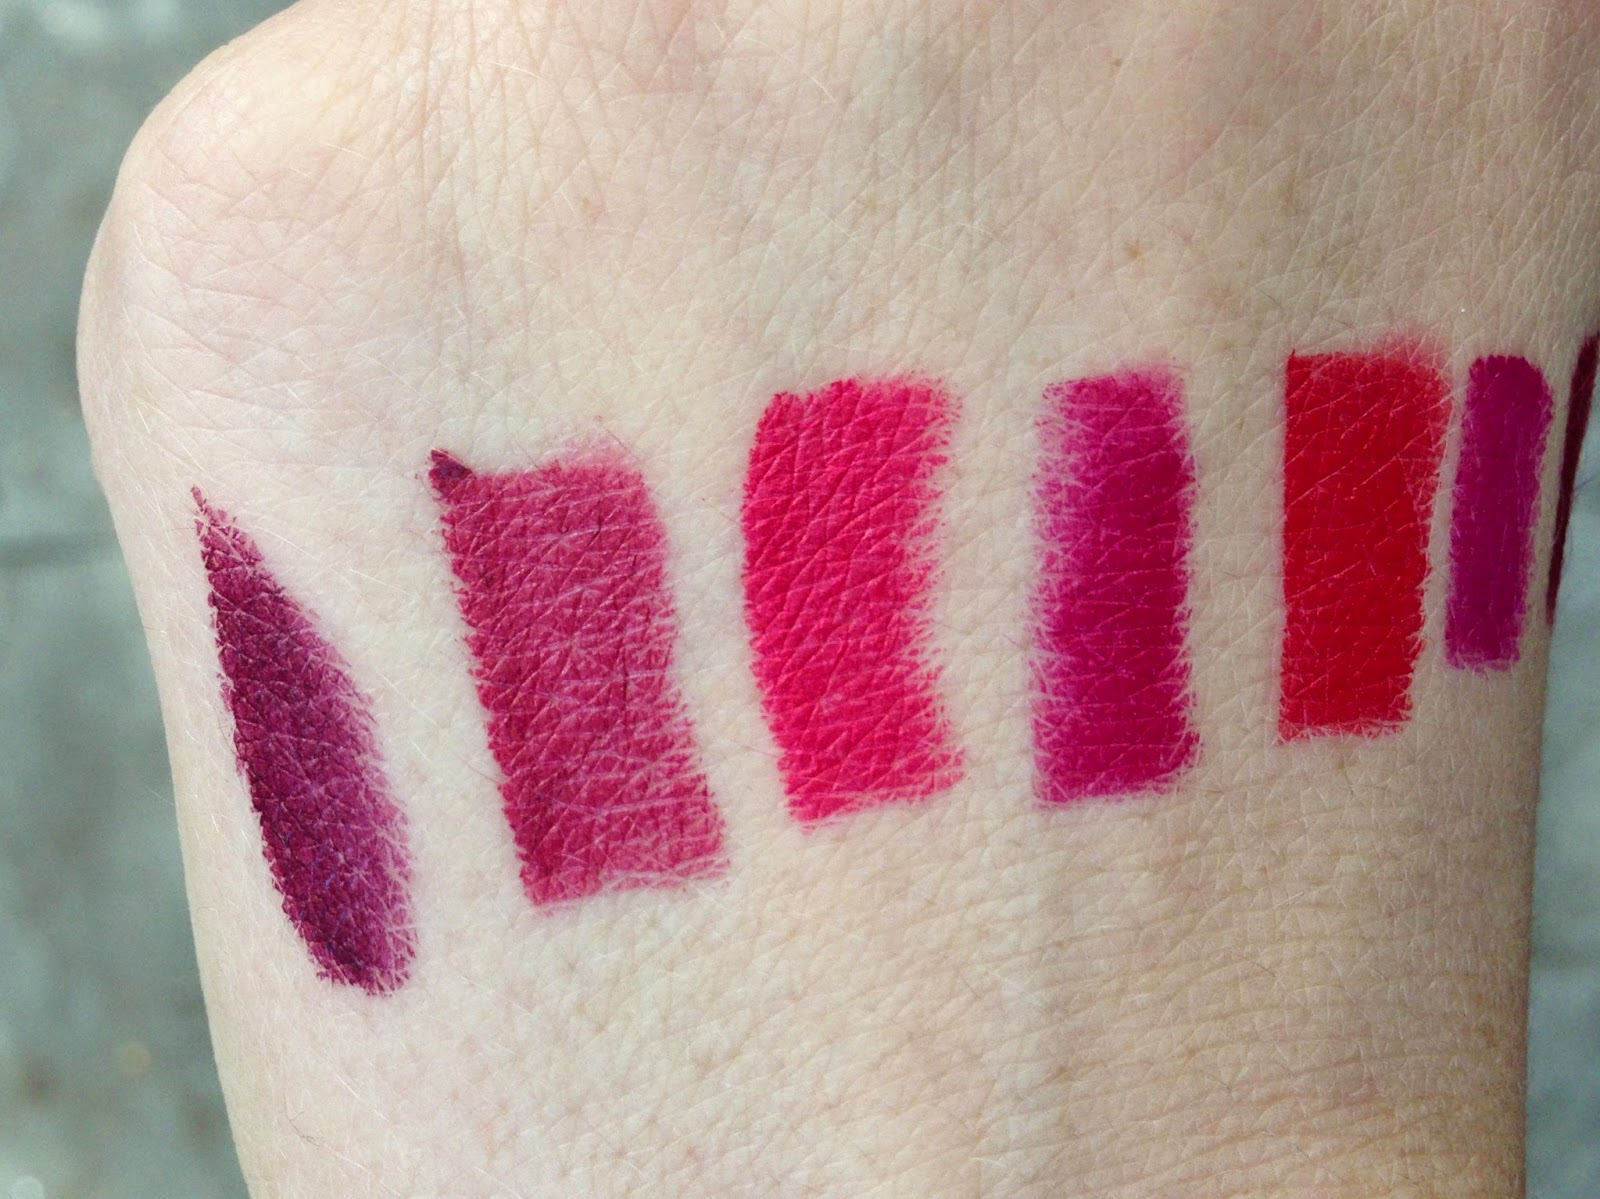 Très auxiliary beauty: NARS Audacious Lipstick Swatches and the Allure  BN94